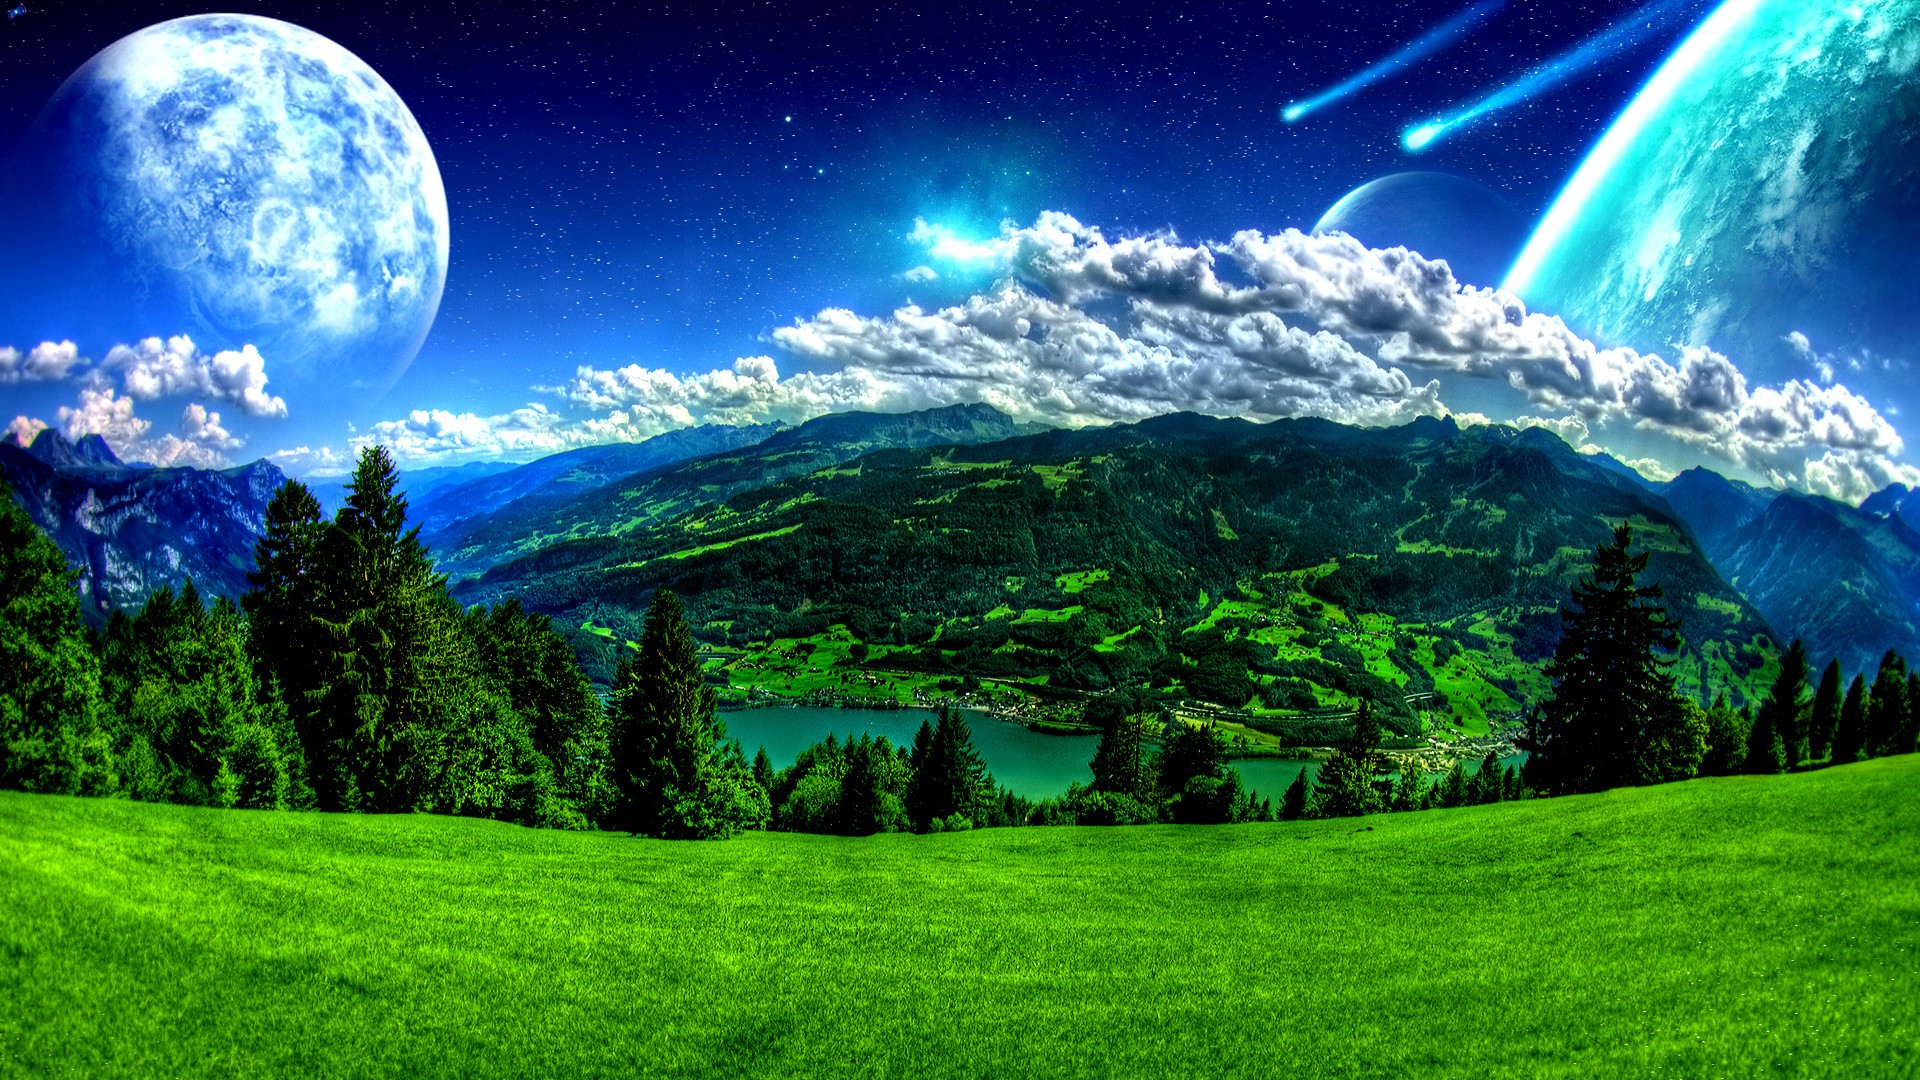 Landscapes Outer Wallpaper 1920x1080 Landscapes Outer Space Moon 1920x1080